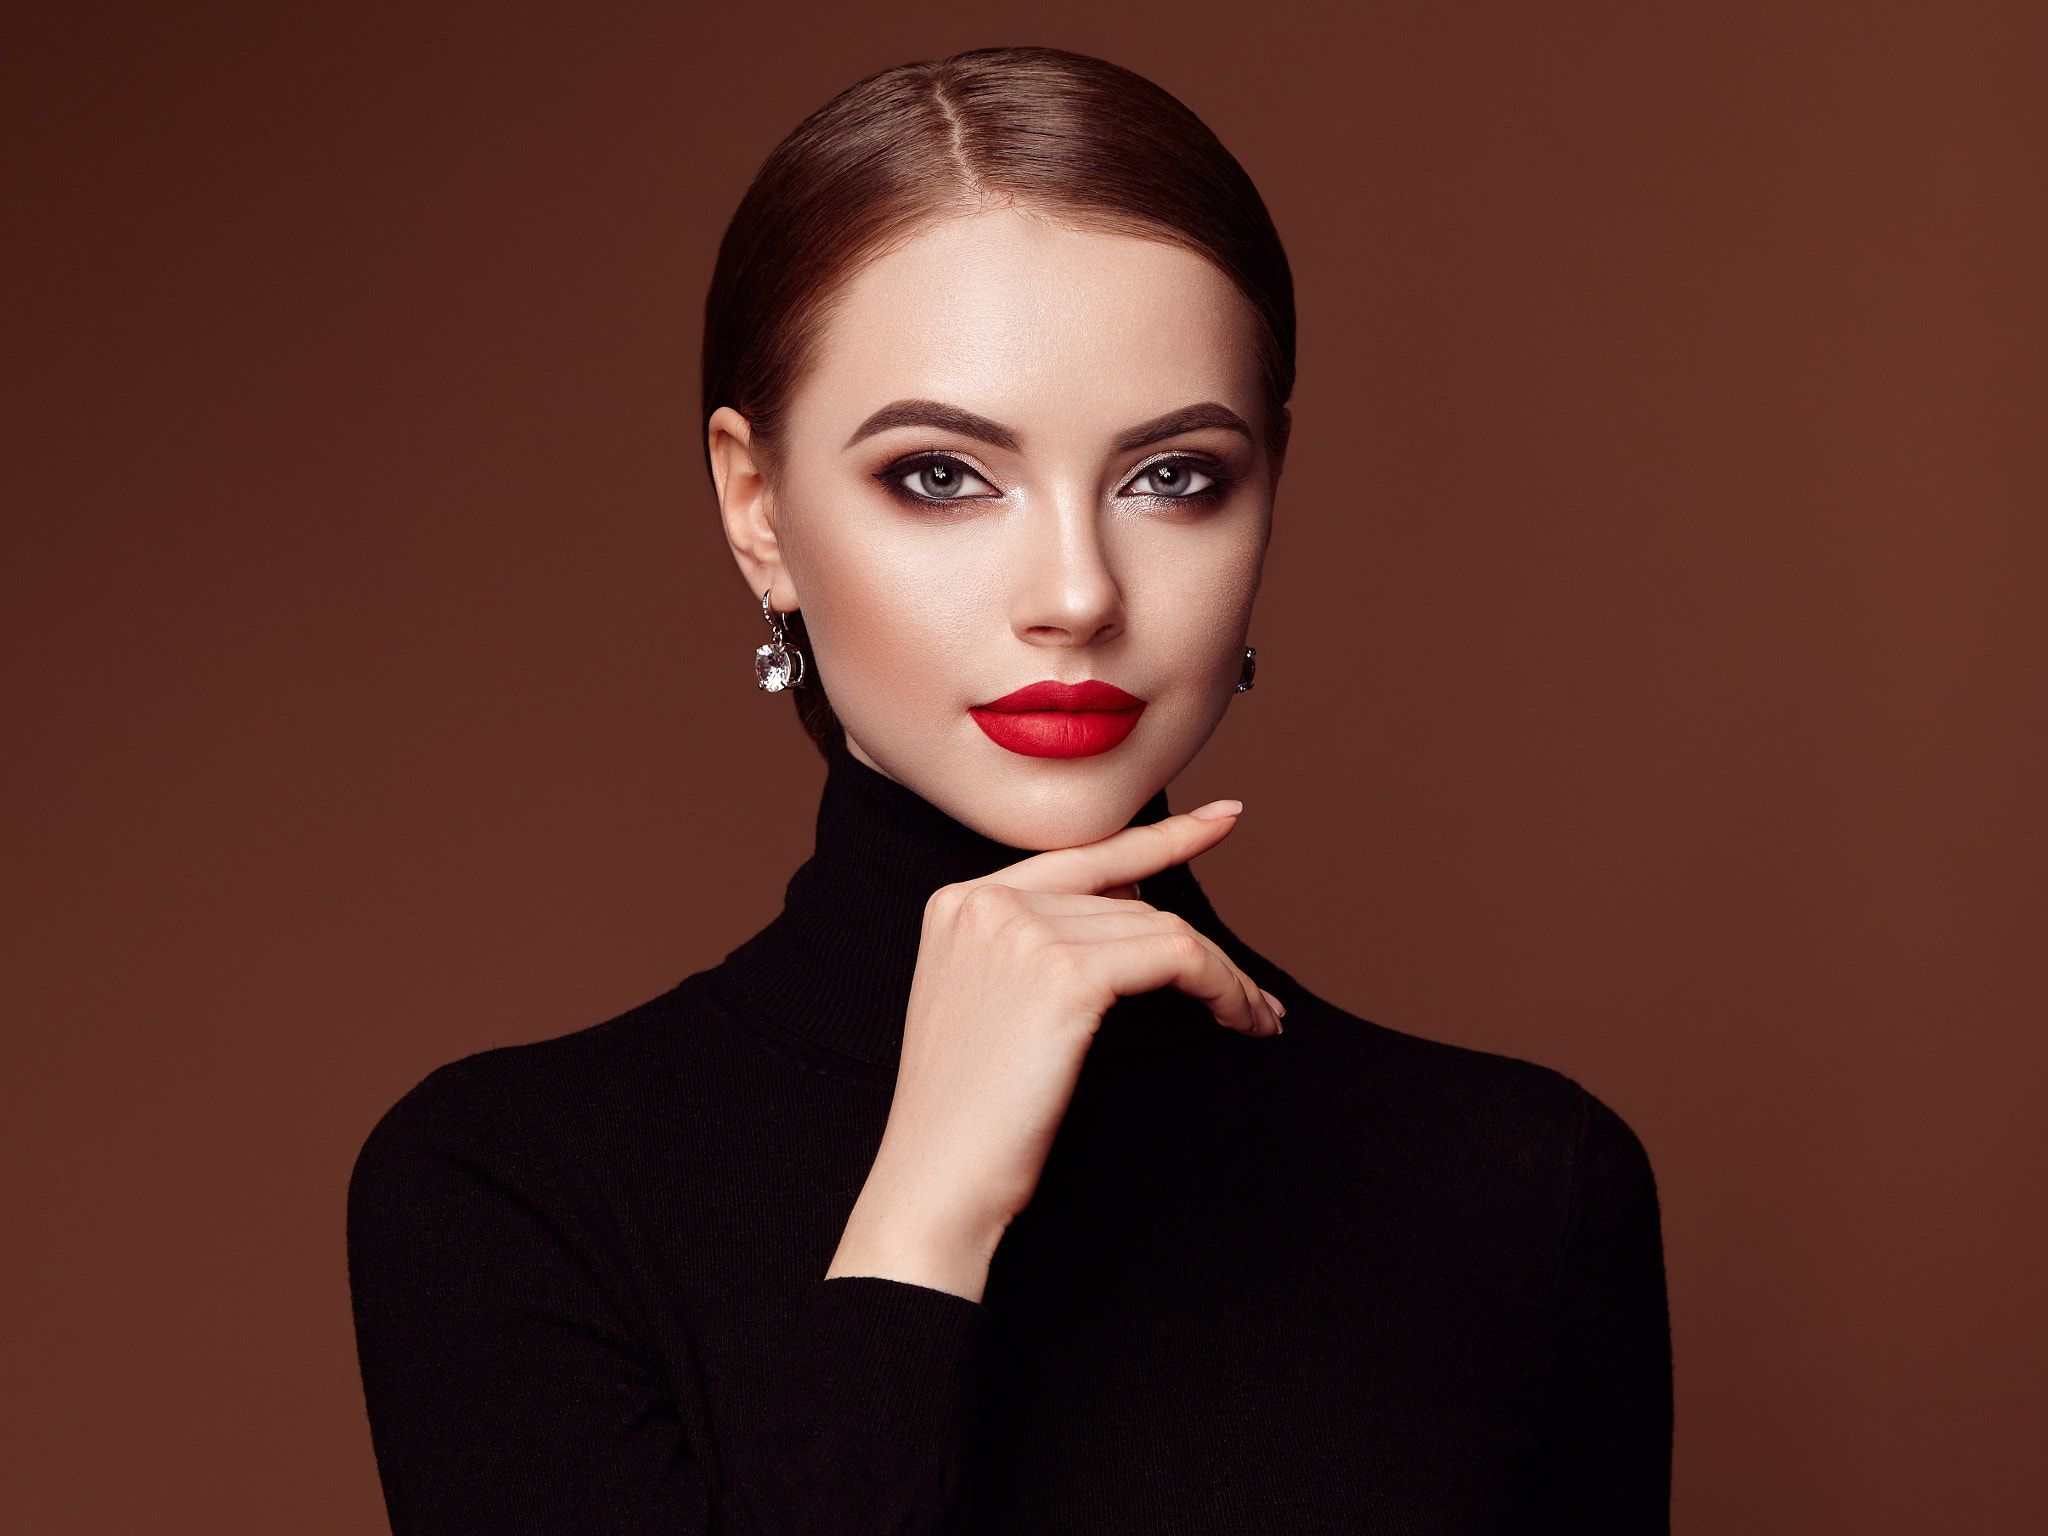 Beautiful Woman Face With Perfect Makeup Beautiful Young Woman With Clean Fresh Skin Perfect Makeup Be Beautiful Women Faces Perfect Makeup Beauty Portrait